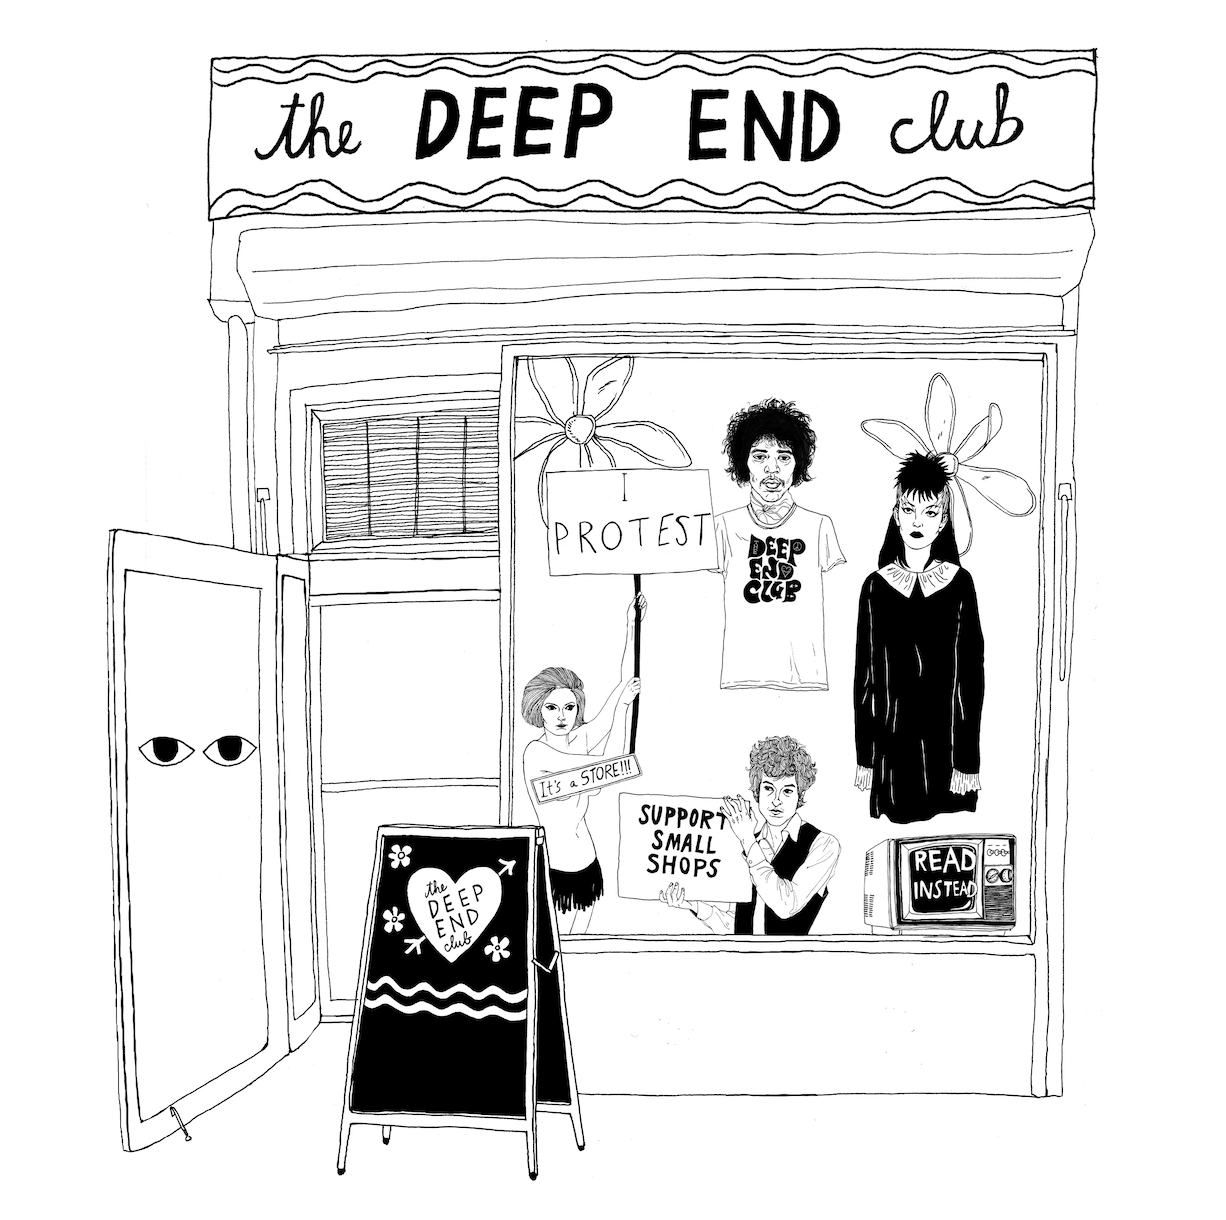 The Deep End Club by Cali Sales